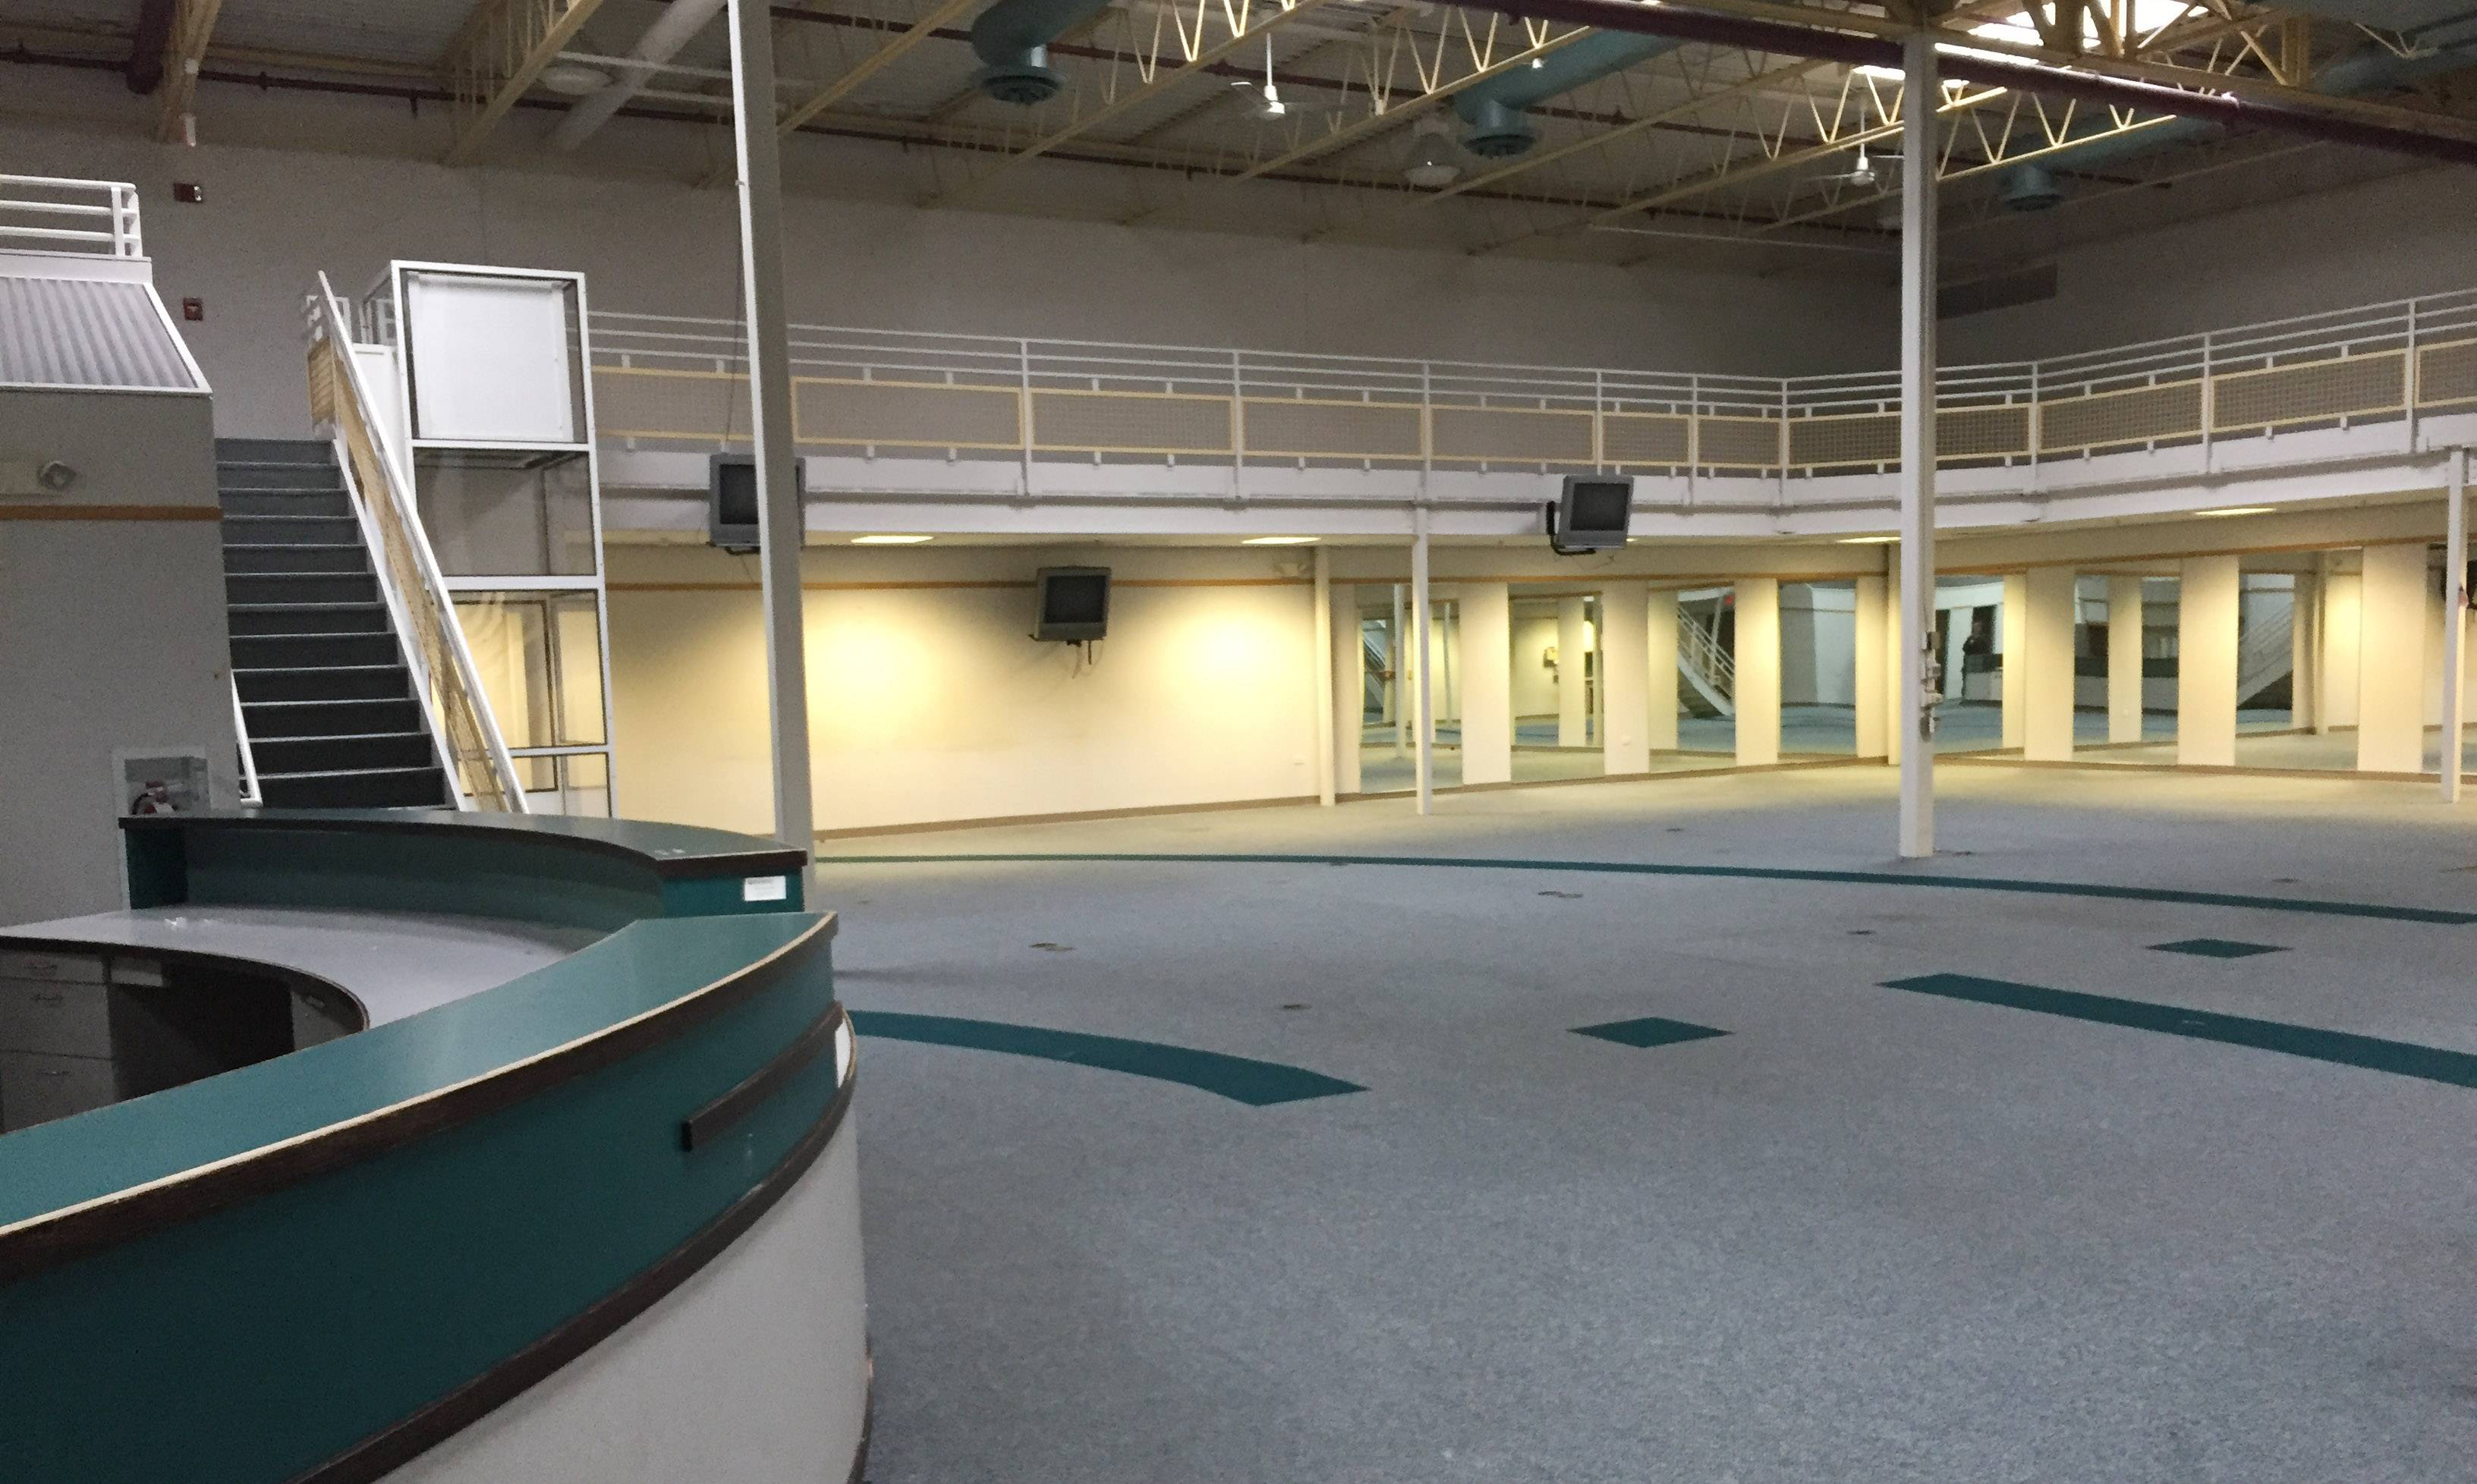 Texas-based company Urban Air Trampoline Park wants to turn the former Sherman Health Resource Center at 1019 E. Chicago St. in Elgin into an indoor amusement center. Shown here is the former cardiac rehab area with elevated running track inside the building.